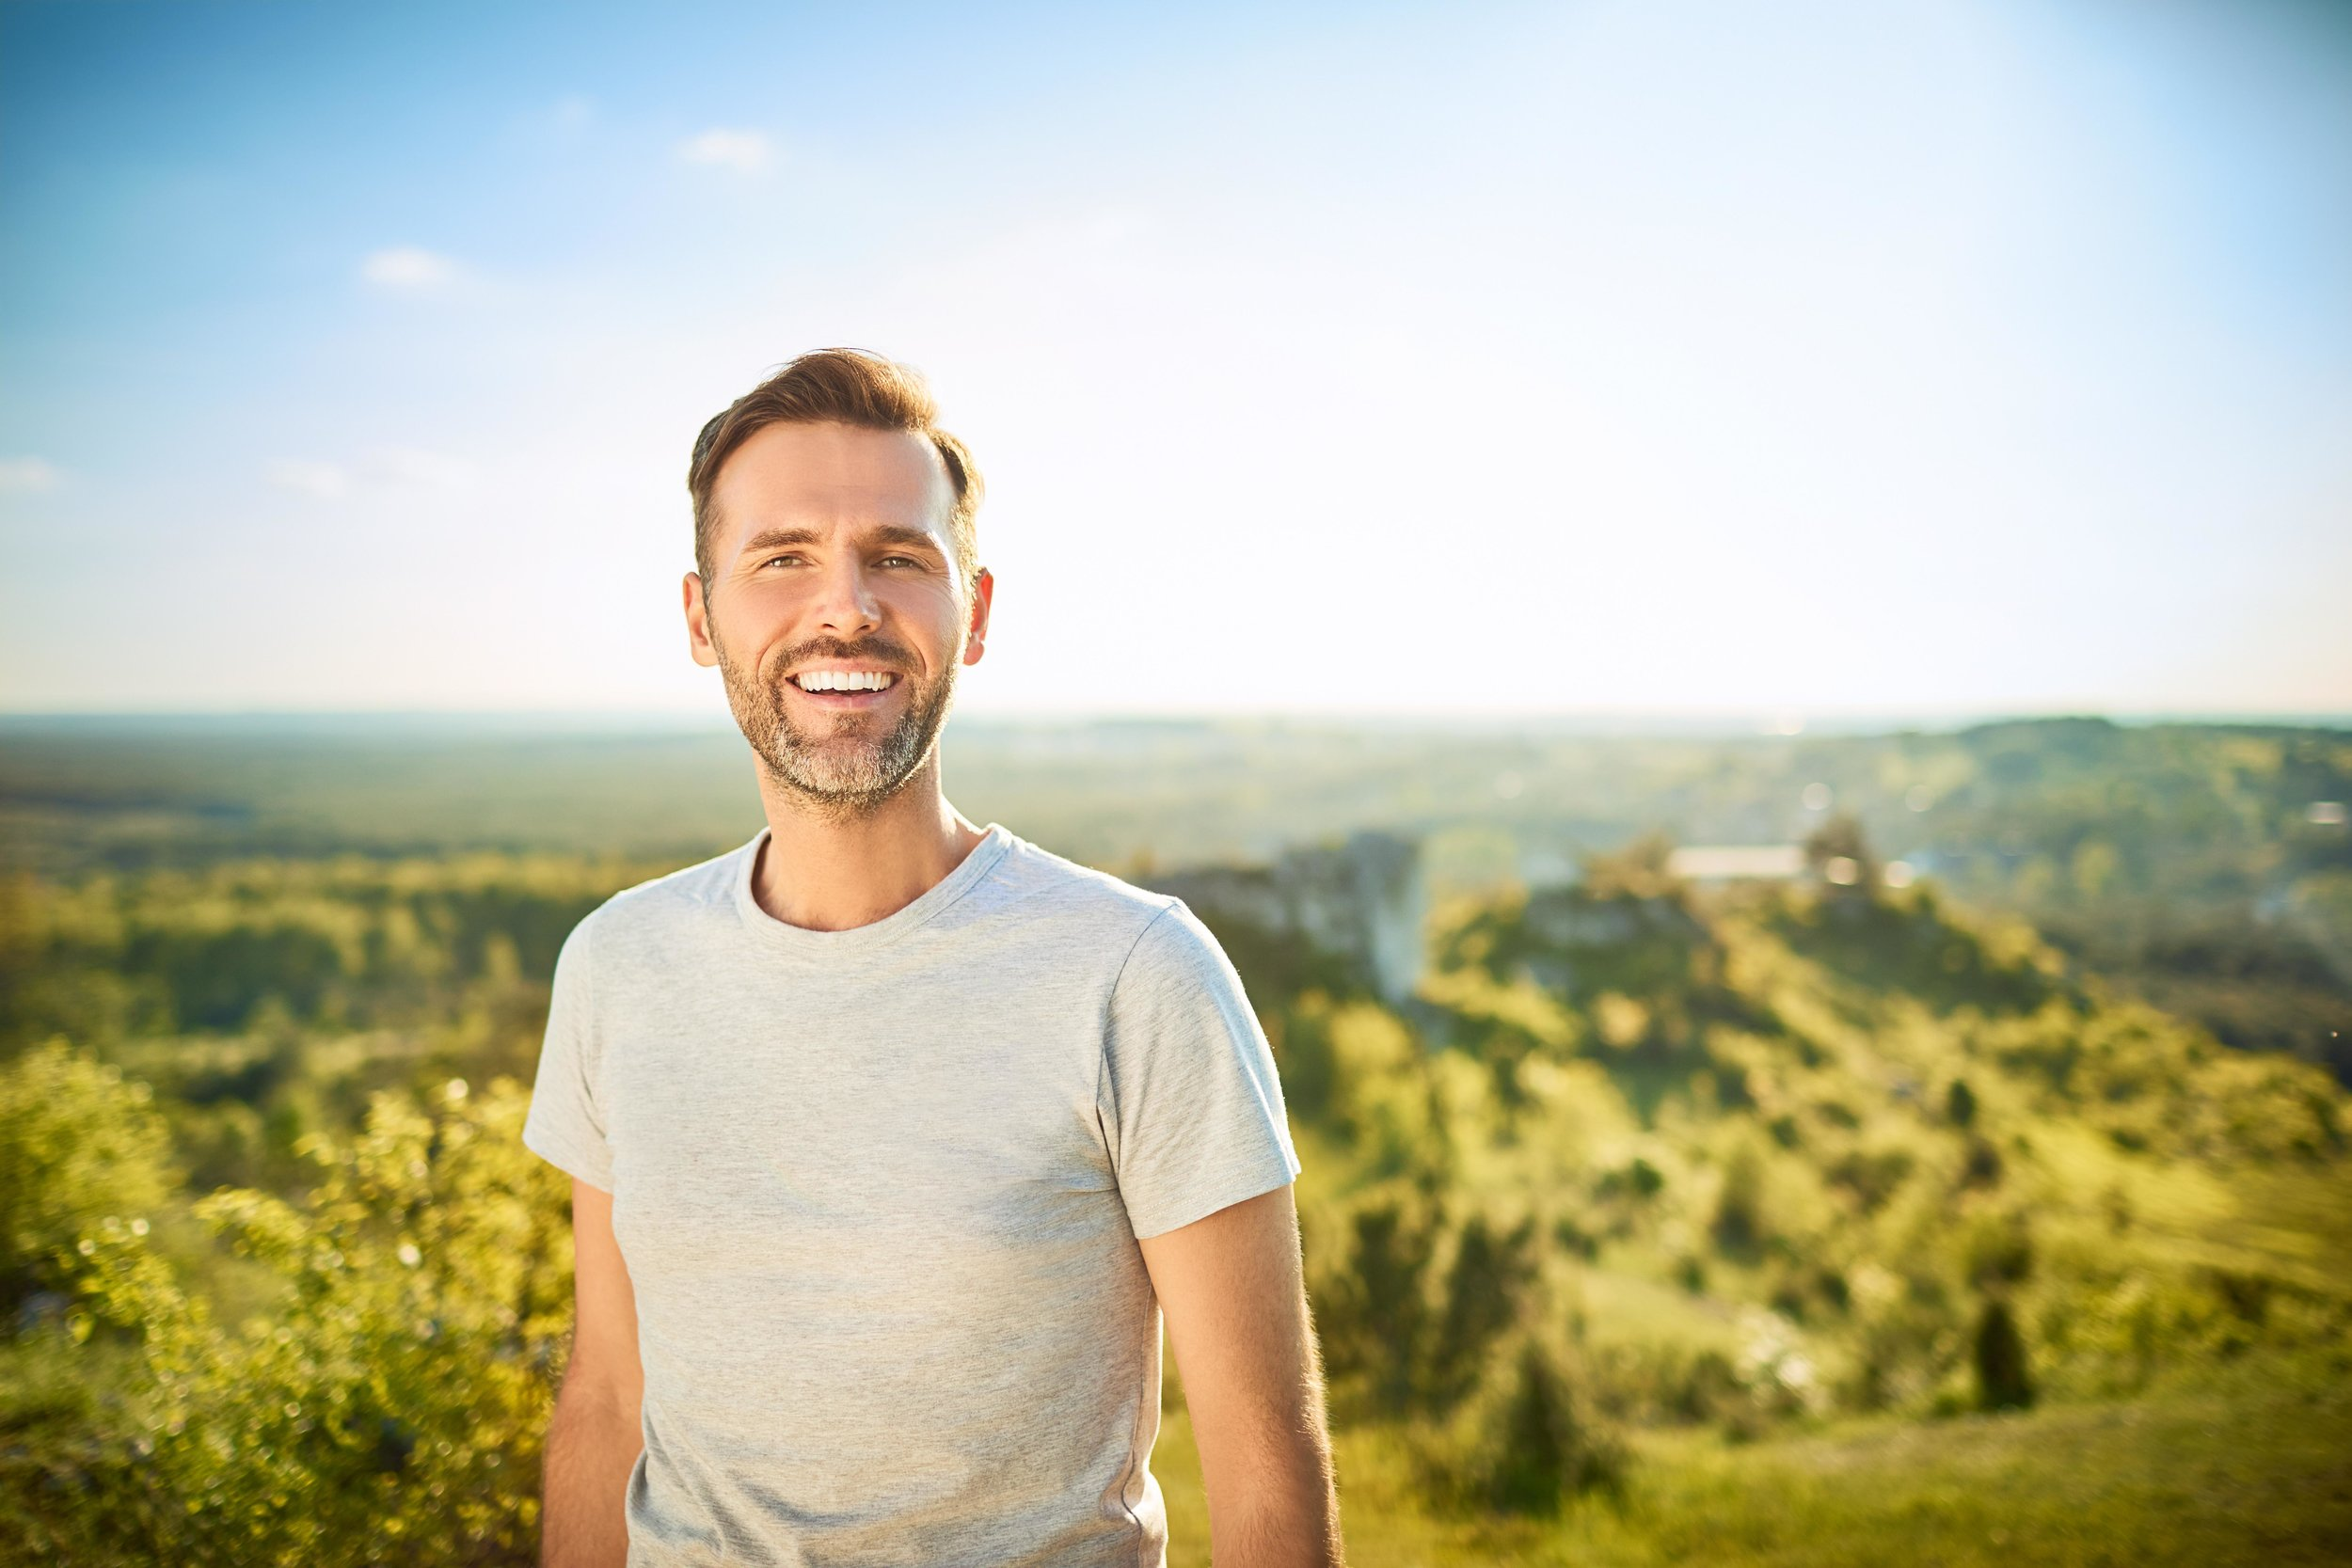 Man Outdoors in Scenic Area